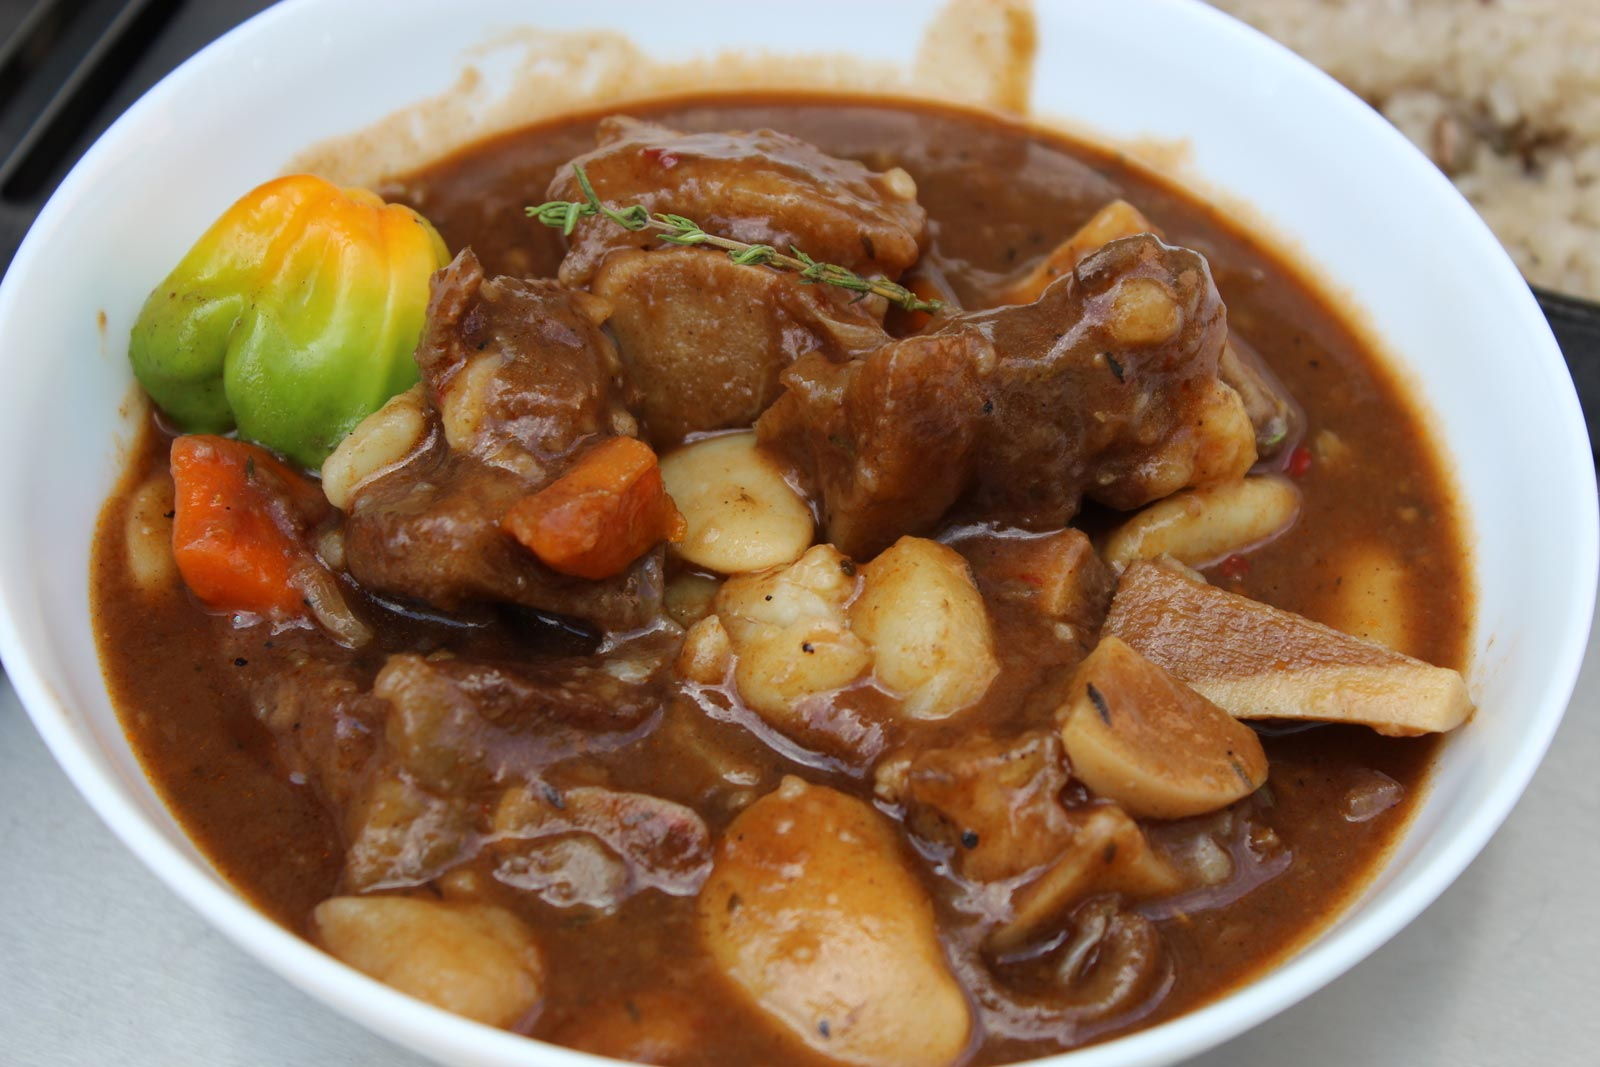 Braised Cow Foot with Beans